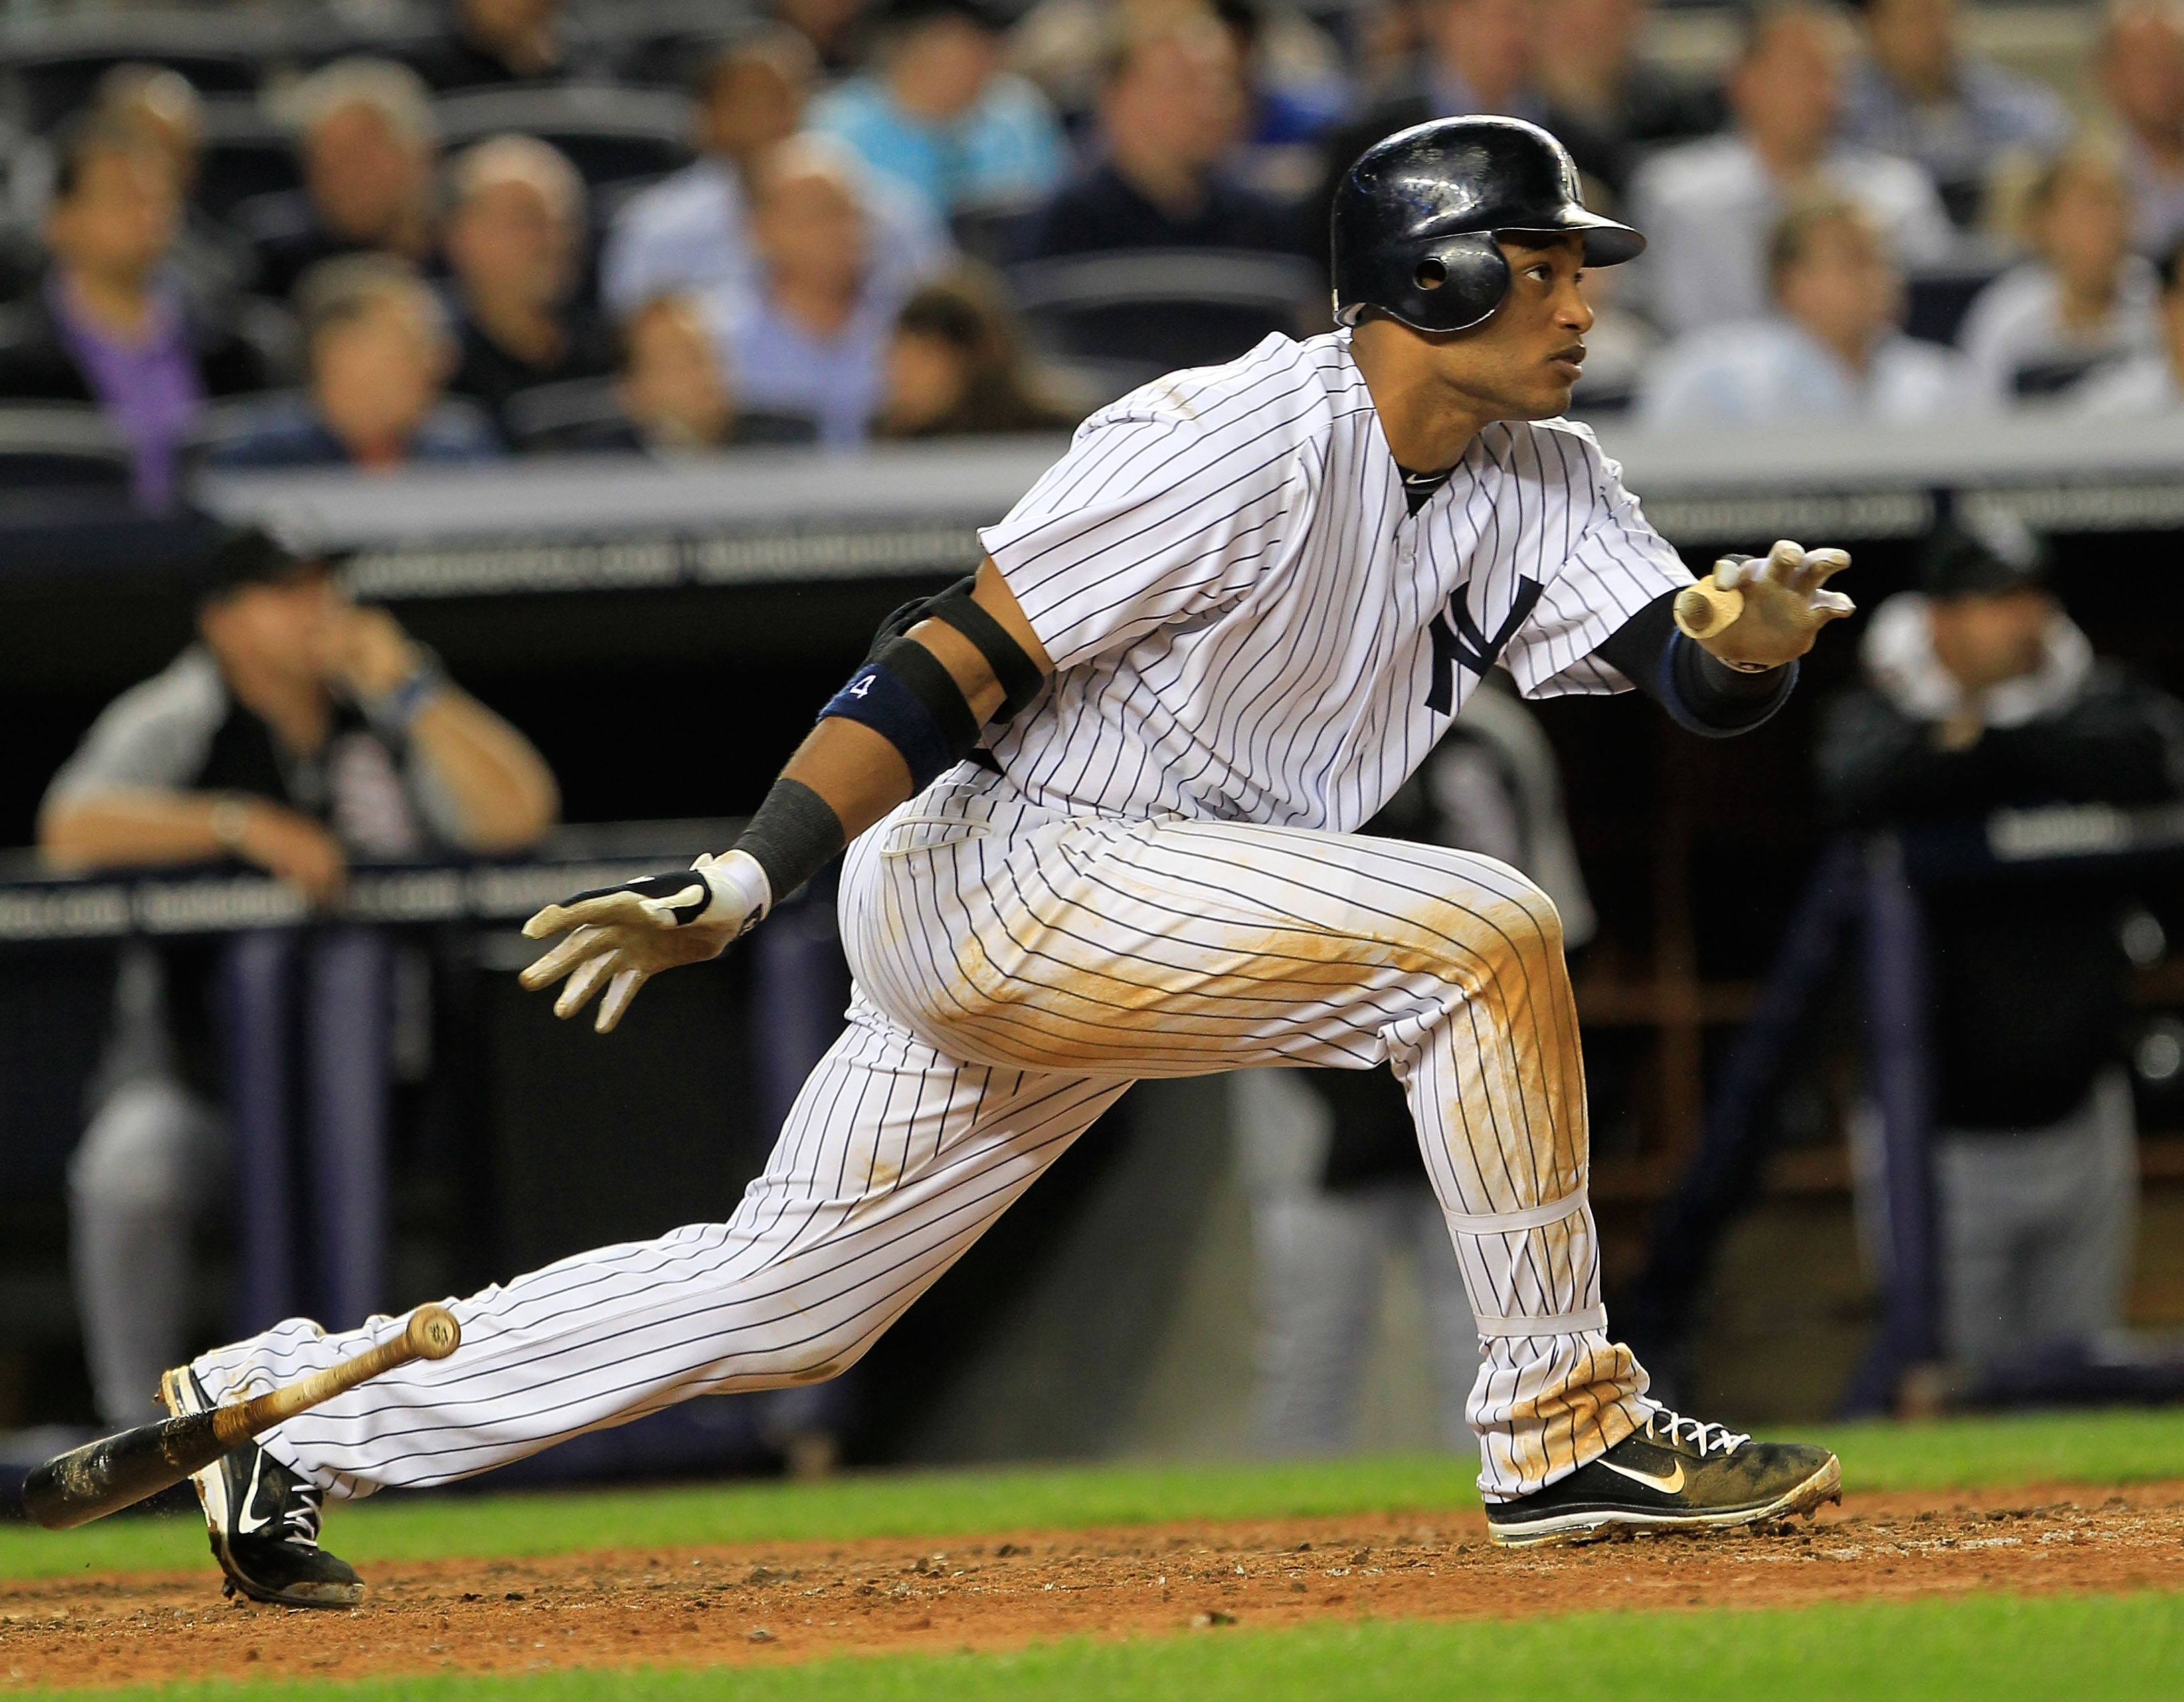 NEW YORK, NY - APRIL 26:  Robinson Cano #24 of the New York Yankees bats against the Chicago White Sox at Yankee Stadium on April 26, 2011 in the Bronx borough of New York City. The White Sox defeated the Yankees 3-2.  (Photo by Chris Trotman/Getty Images